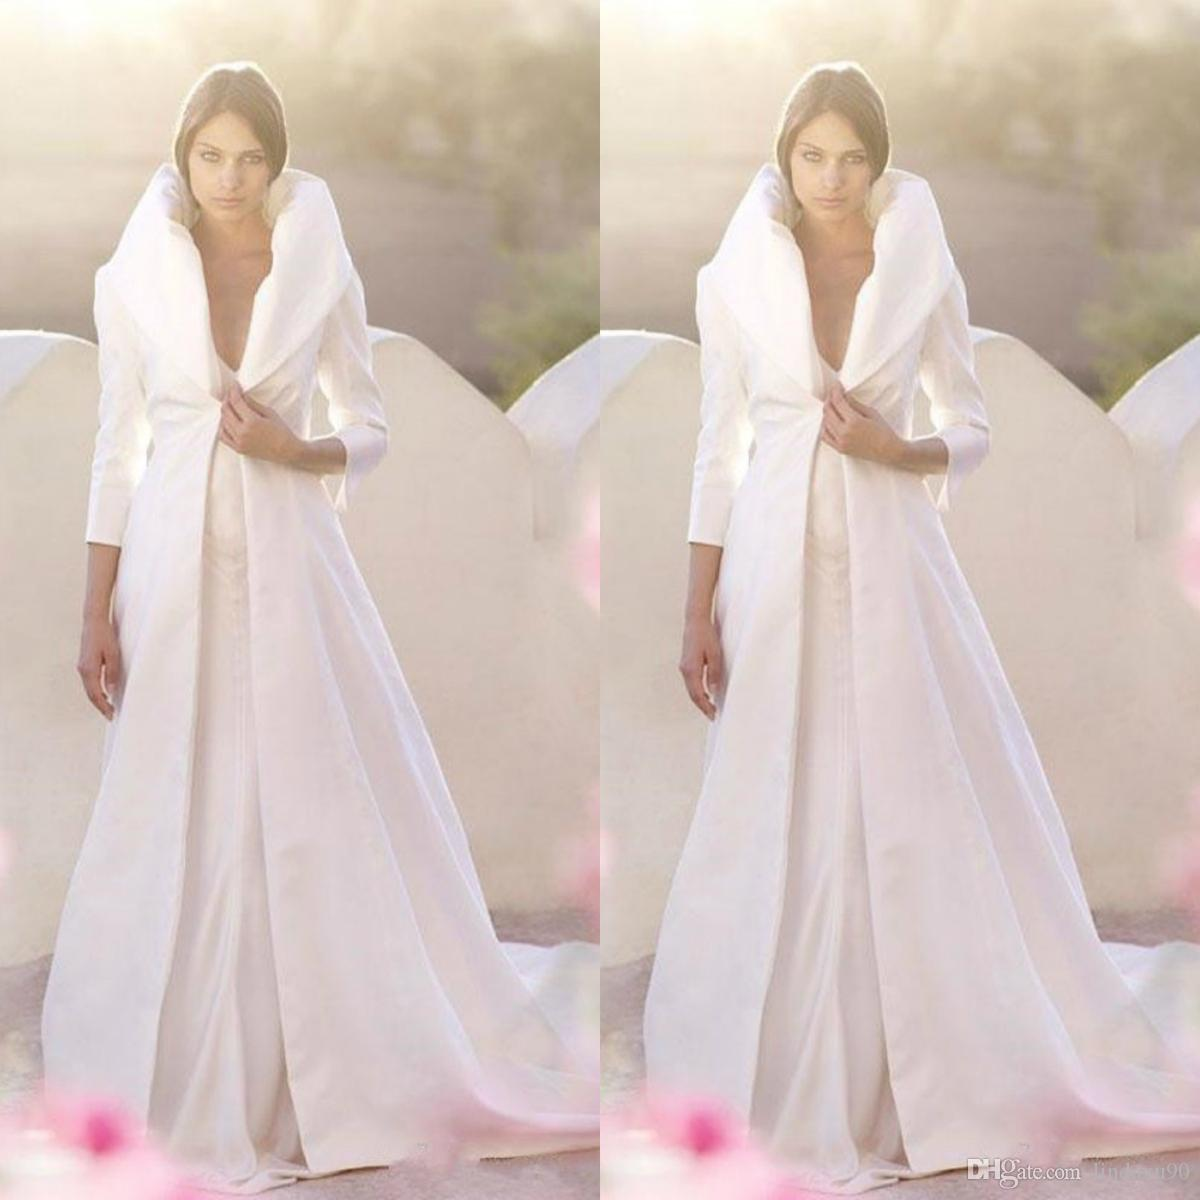 2019 Autumn Winter White Bridal Wrap Jacket Satin Full Length Coats Long Sleeves A Line Bridal Wedding Party Cloak custom made